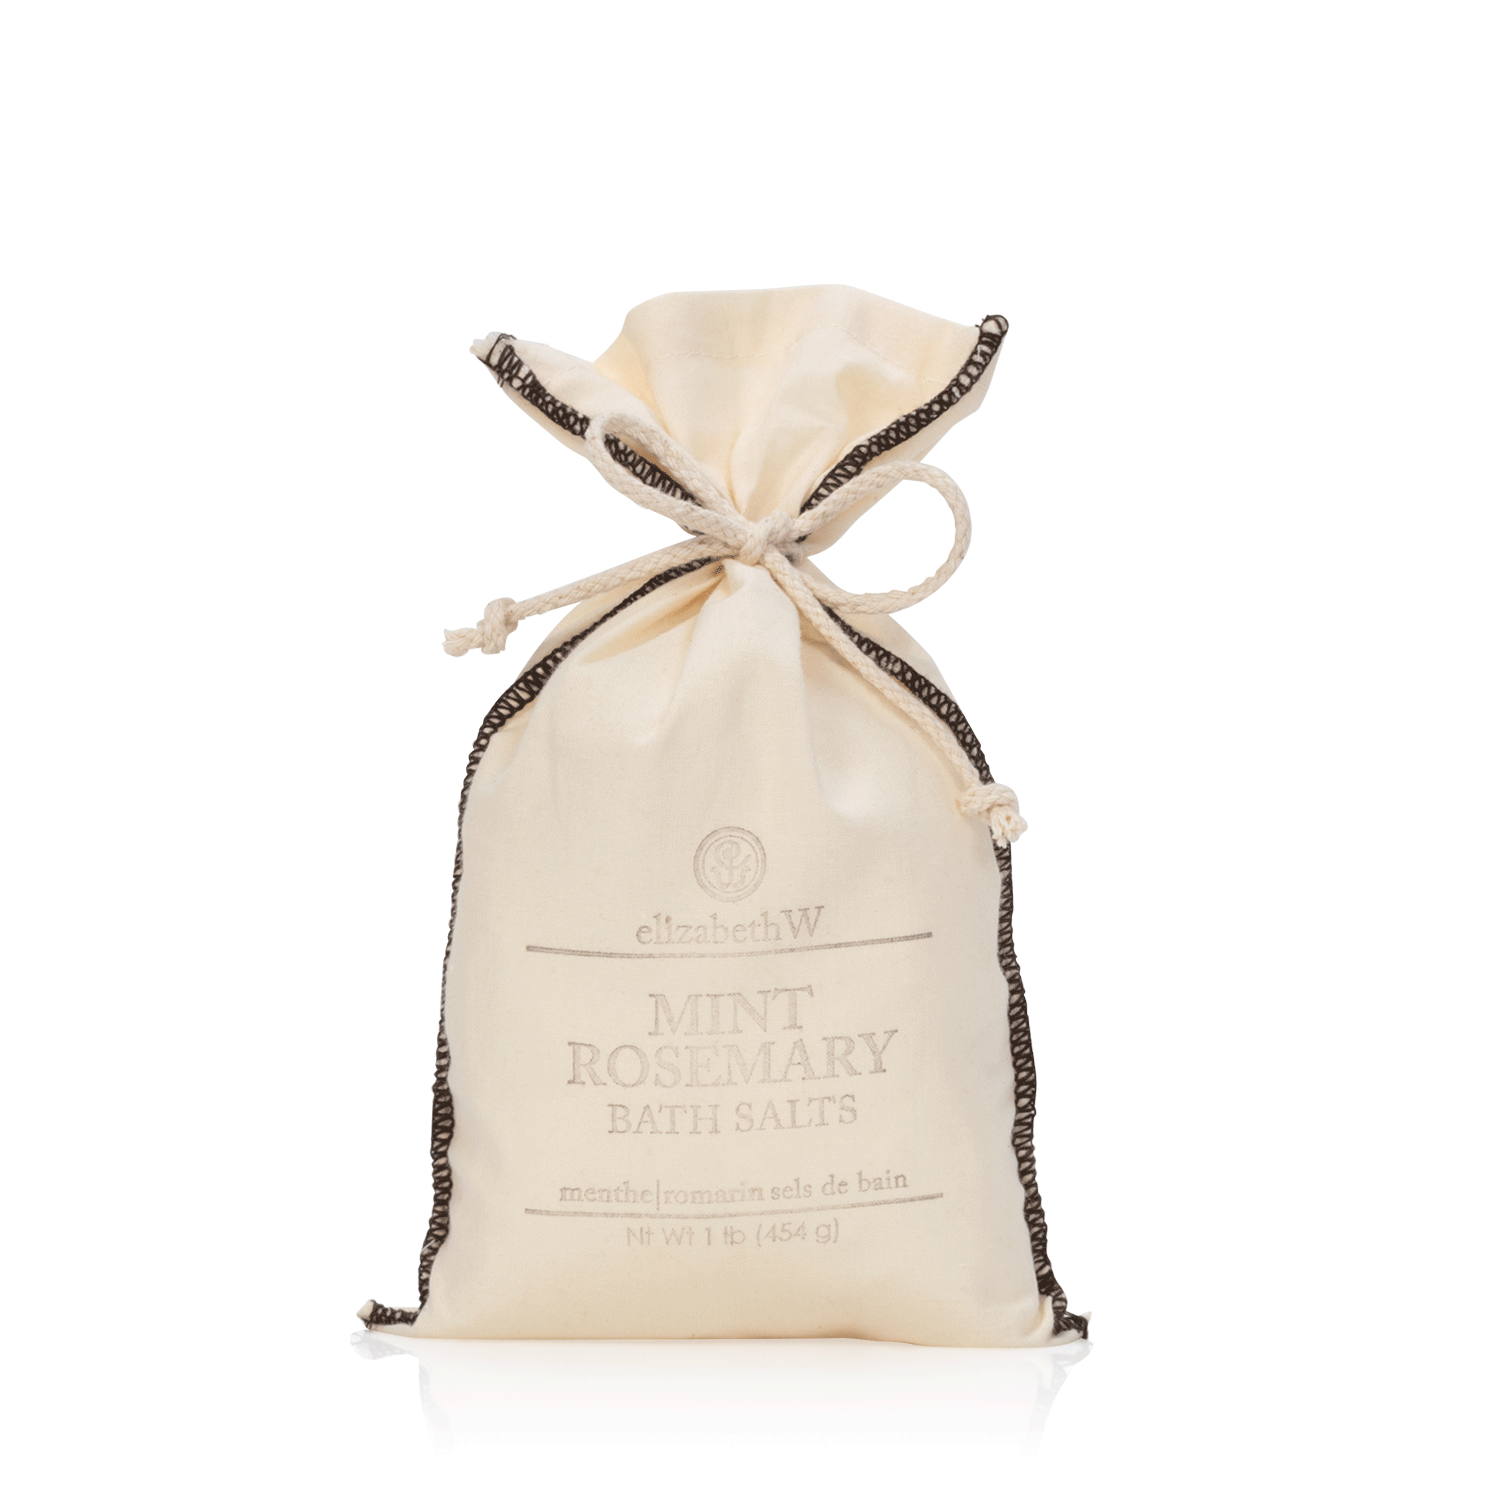 Mint Rosemary Bag of Salts